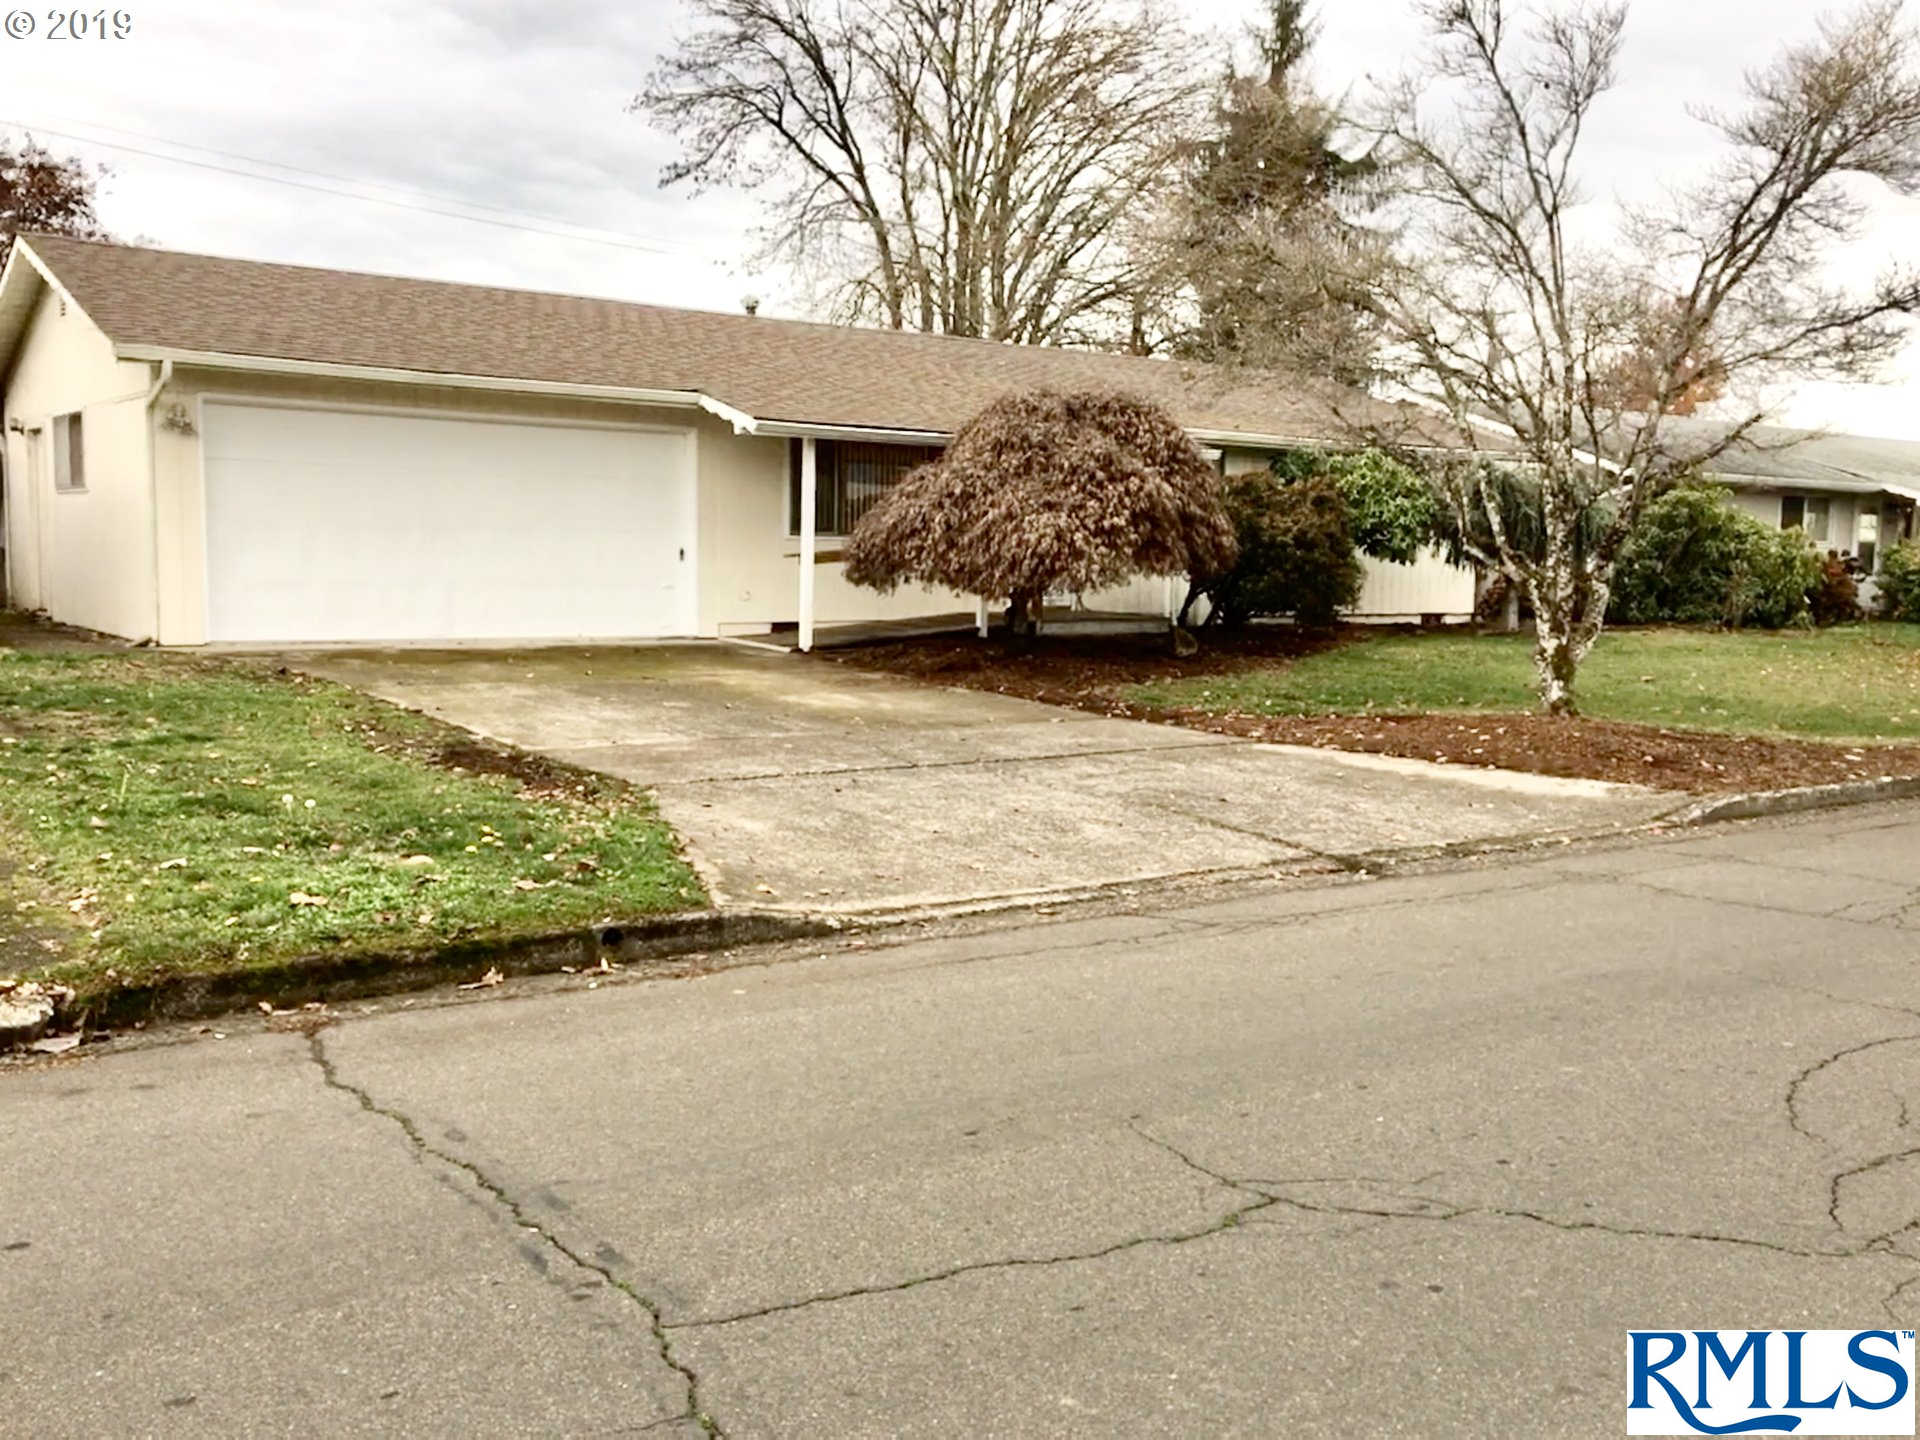 5871 E St, Springfield, OR 97478 has an Open House on  Sunday, December 1, 2019 12:00 PM to 3:00 PM